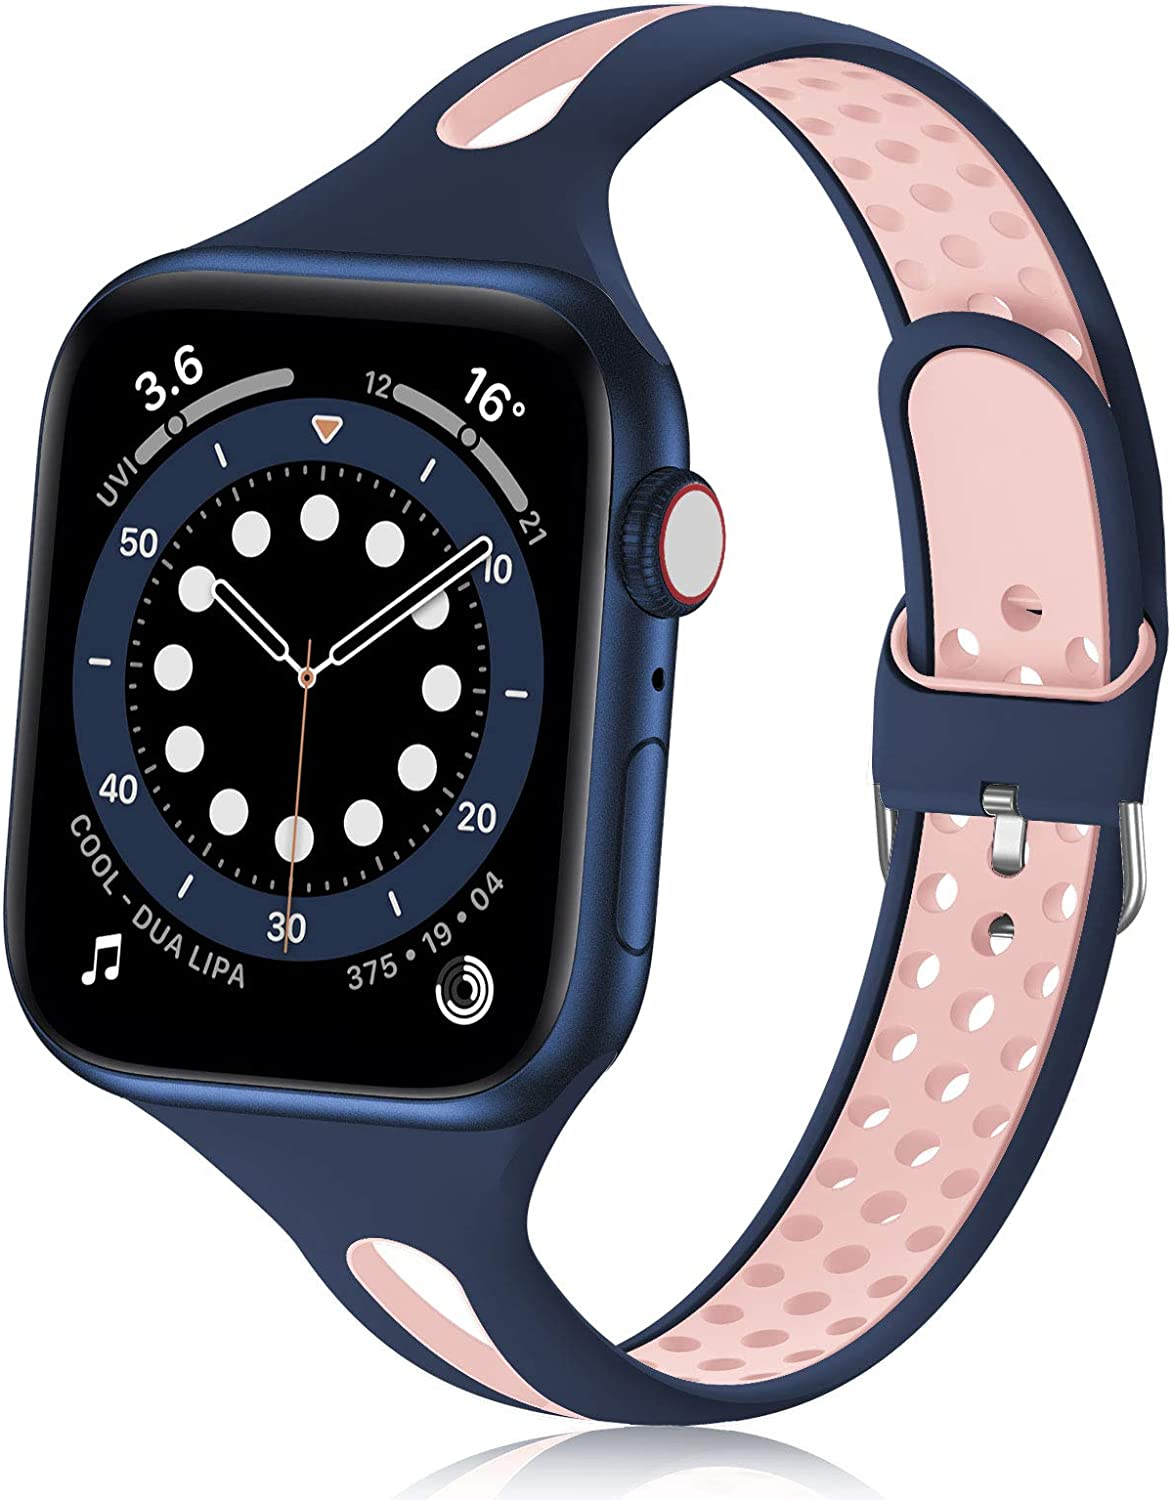 Bandiction Compatible with Apple Watch Bands 38mm 40mm, Soft Silicone iWatch Bands 38mm 40mm Sport Bands Women Men Thin Slim Narrow Breathable Watch Strap Compatible for iWatch SE Series 6 5 4 3 2 1